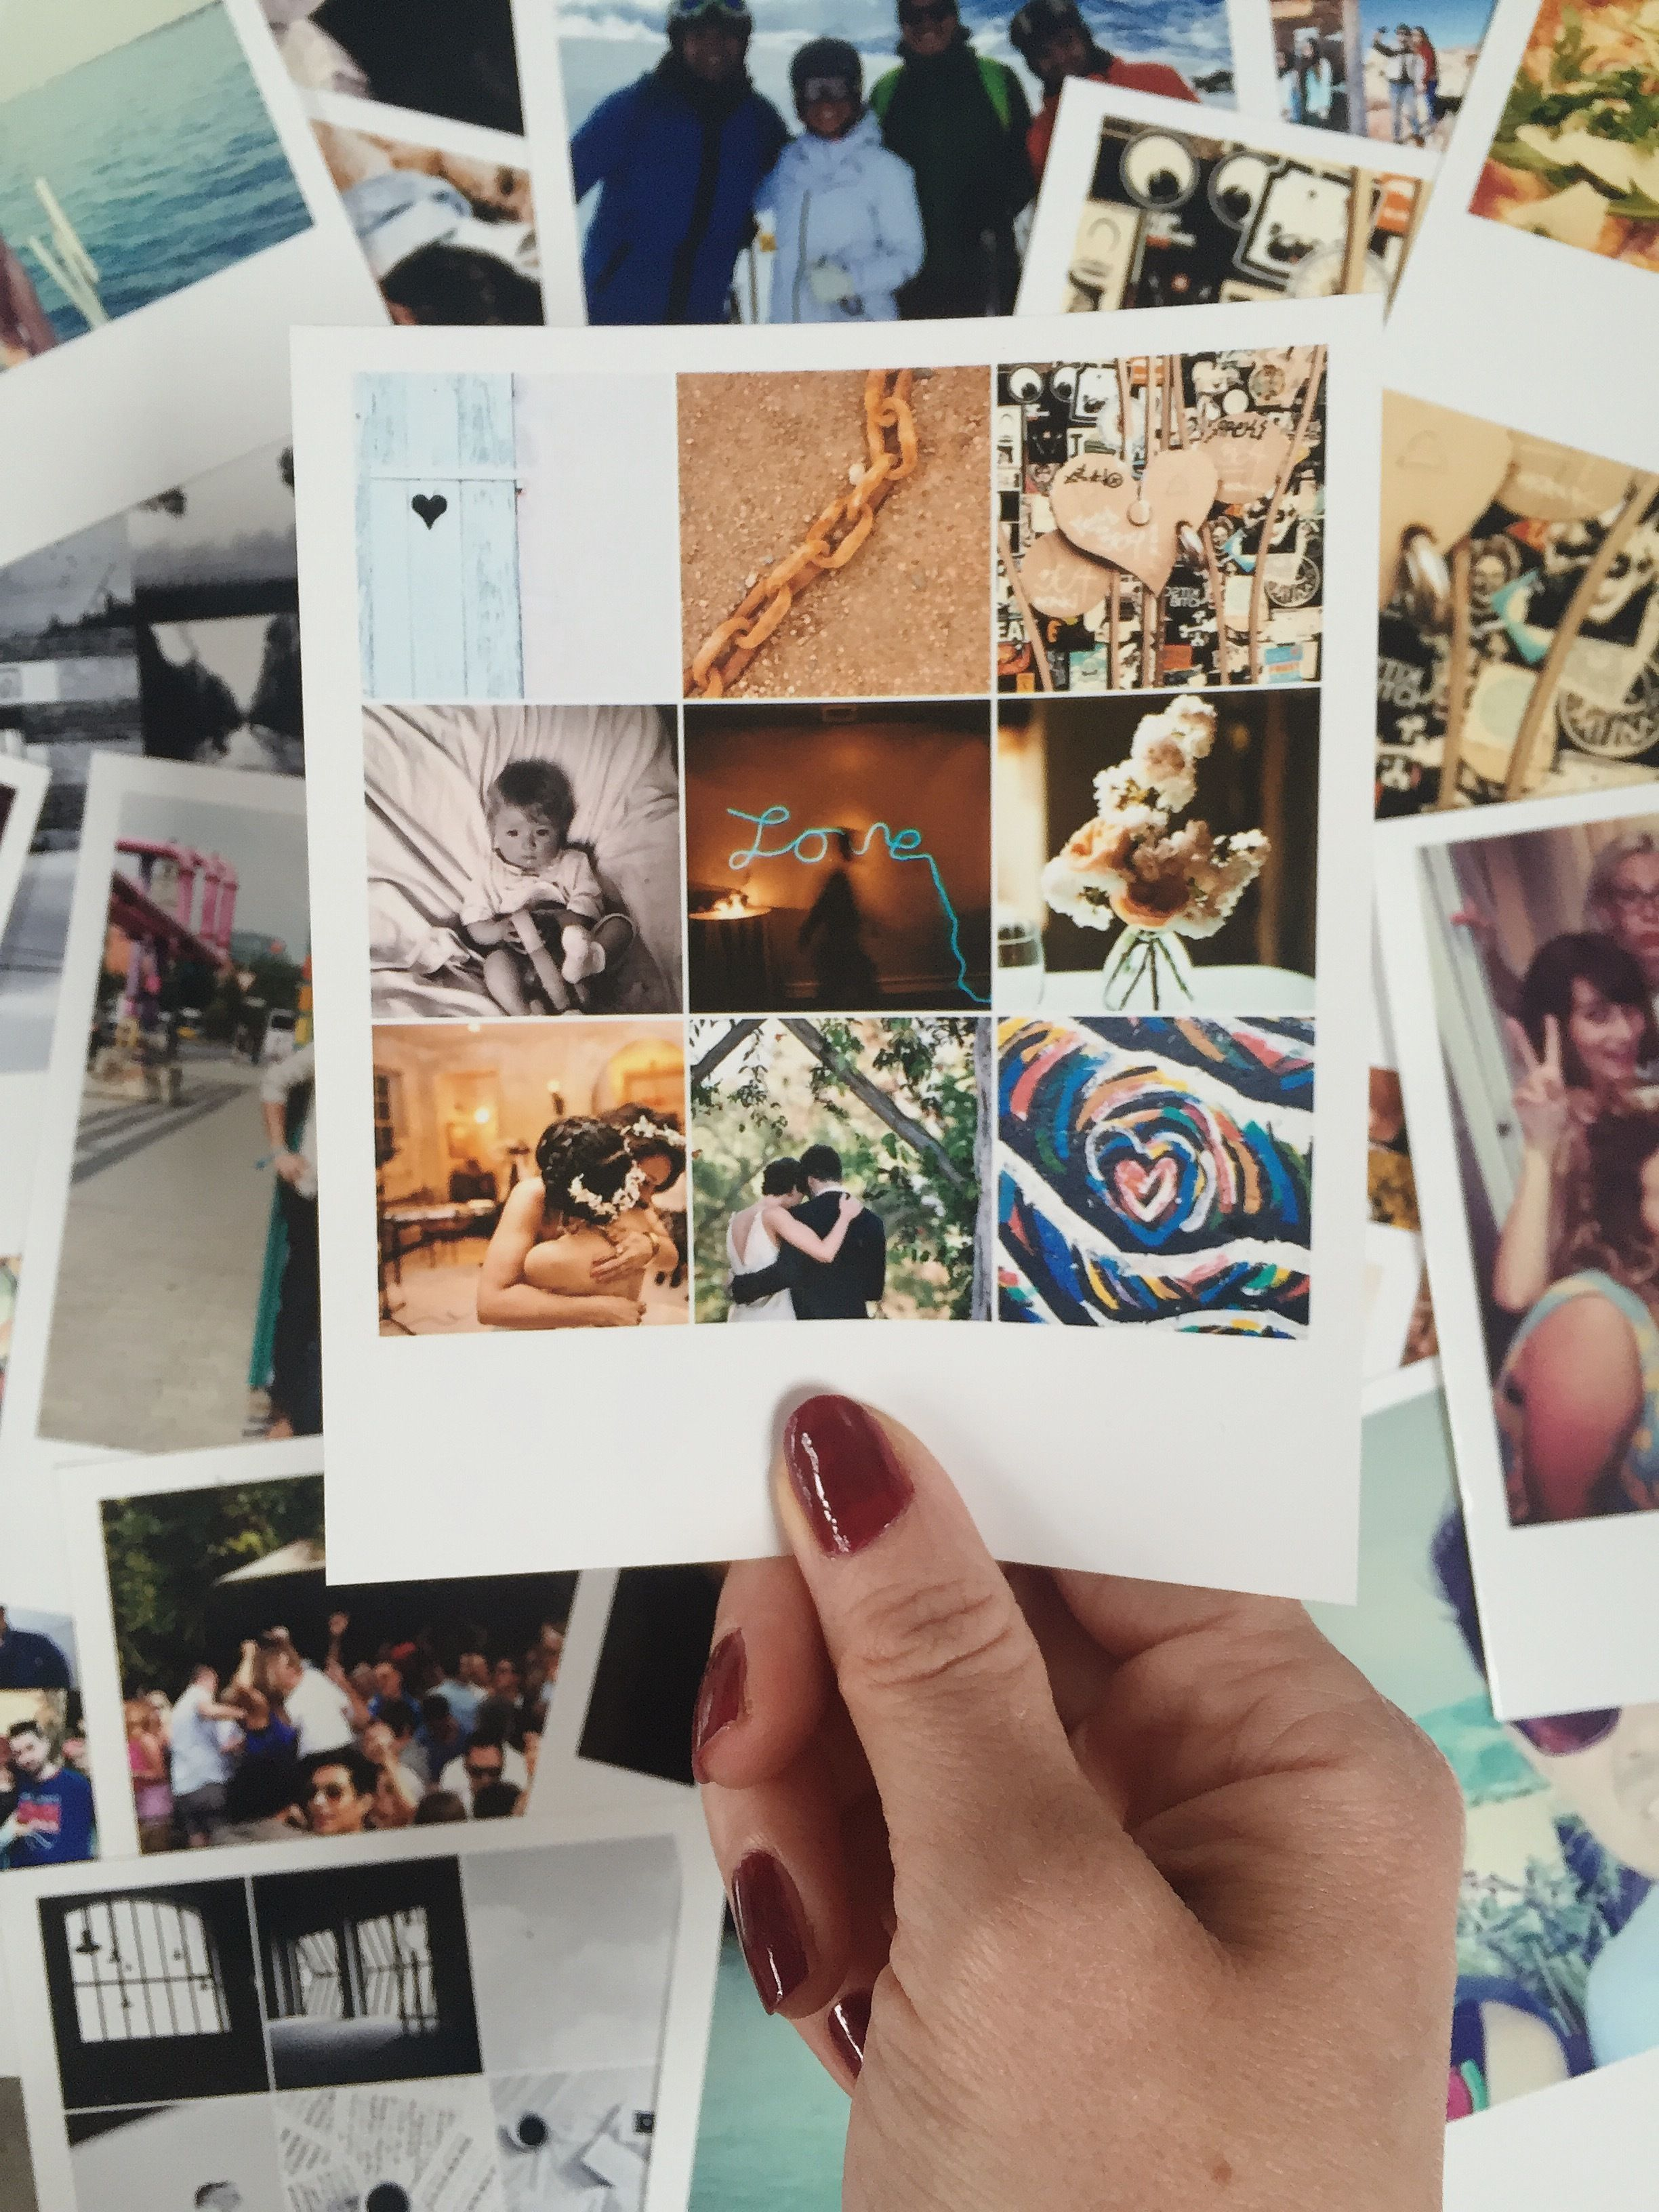 Would you like 9 photos in one? ☺️ #lalalab #prints